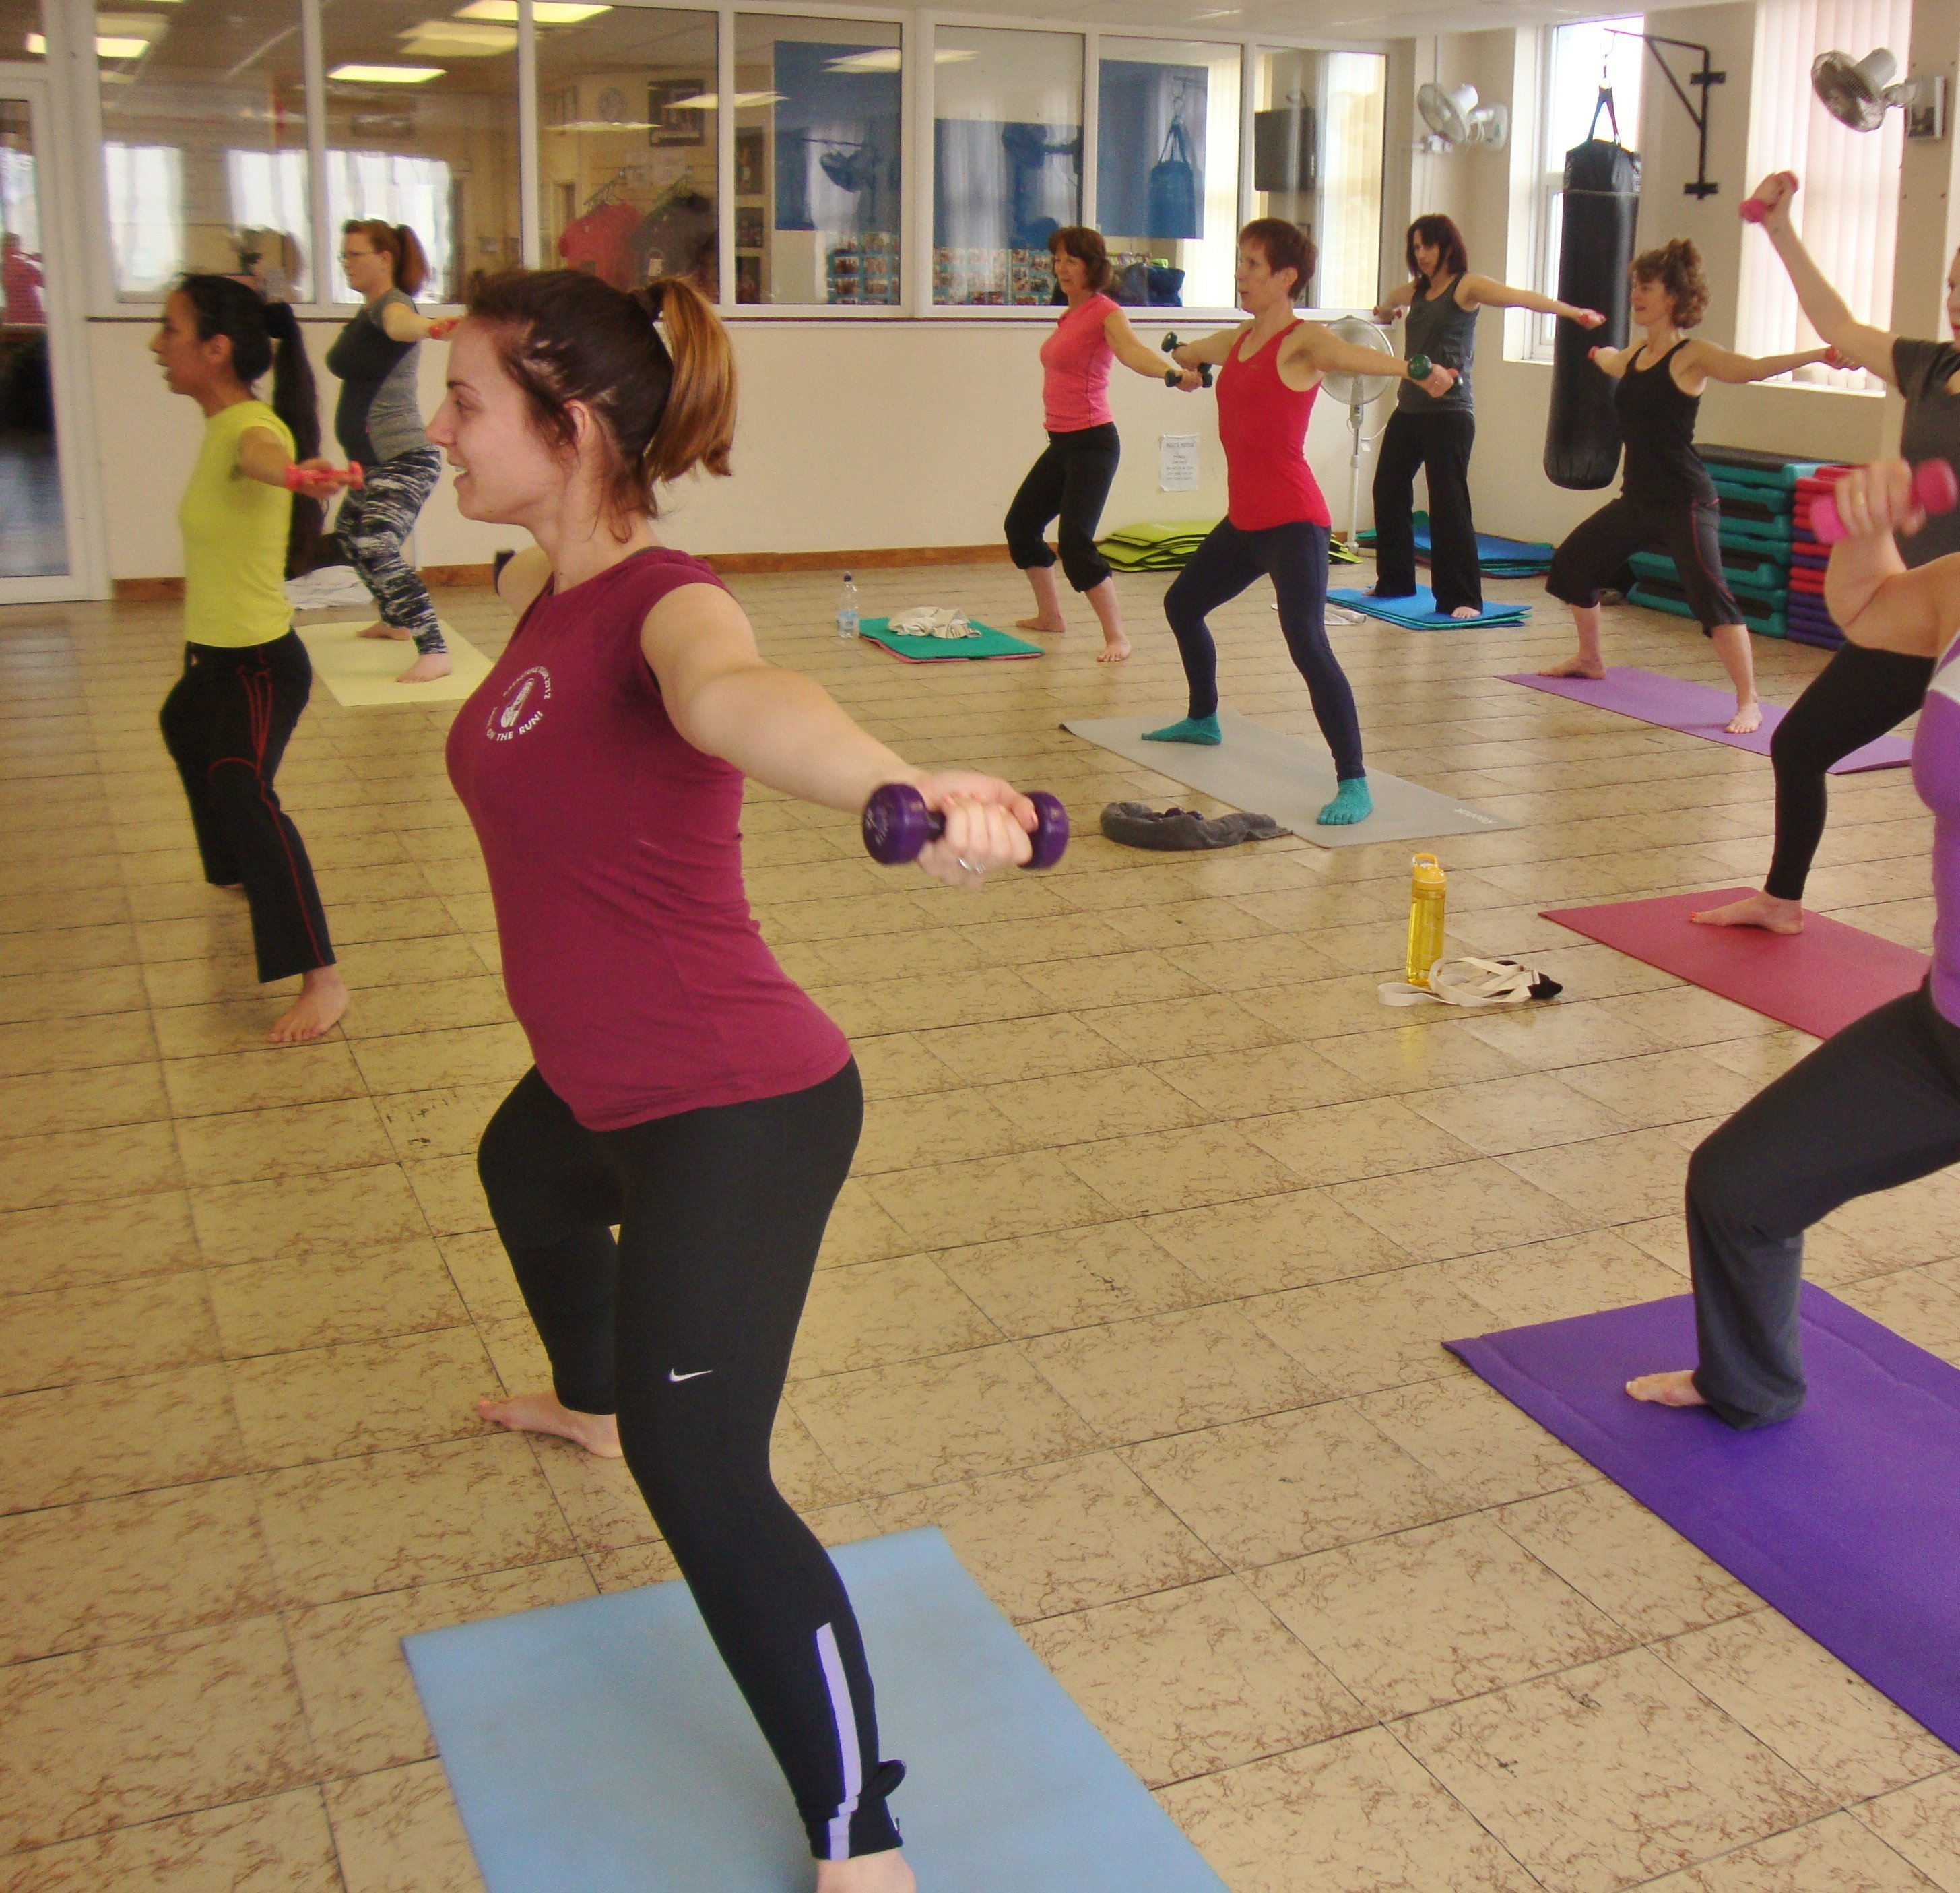 the abc of aerobics meinke Anne patel dissertation abstract language comprehension essay international review of business research papers list essays micro teaching in education the birthmark and rappaccini's daughter essay ubc mba video essay 2016 holidays (mba rendezvous xat essays) cyber safety cyber wellness essay appreciate your parents essay, terminator essay vis starting words for essays msc dfsm dissertation.